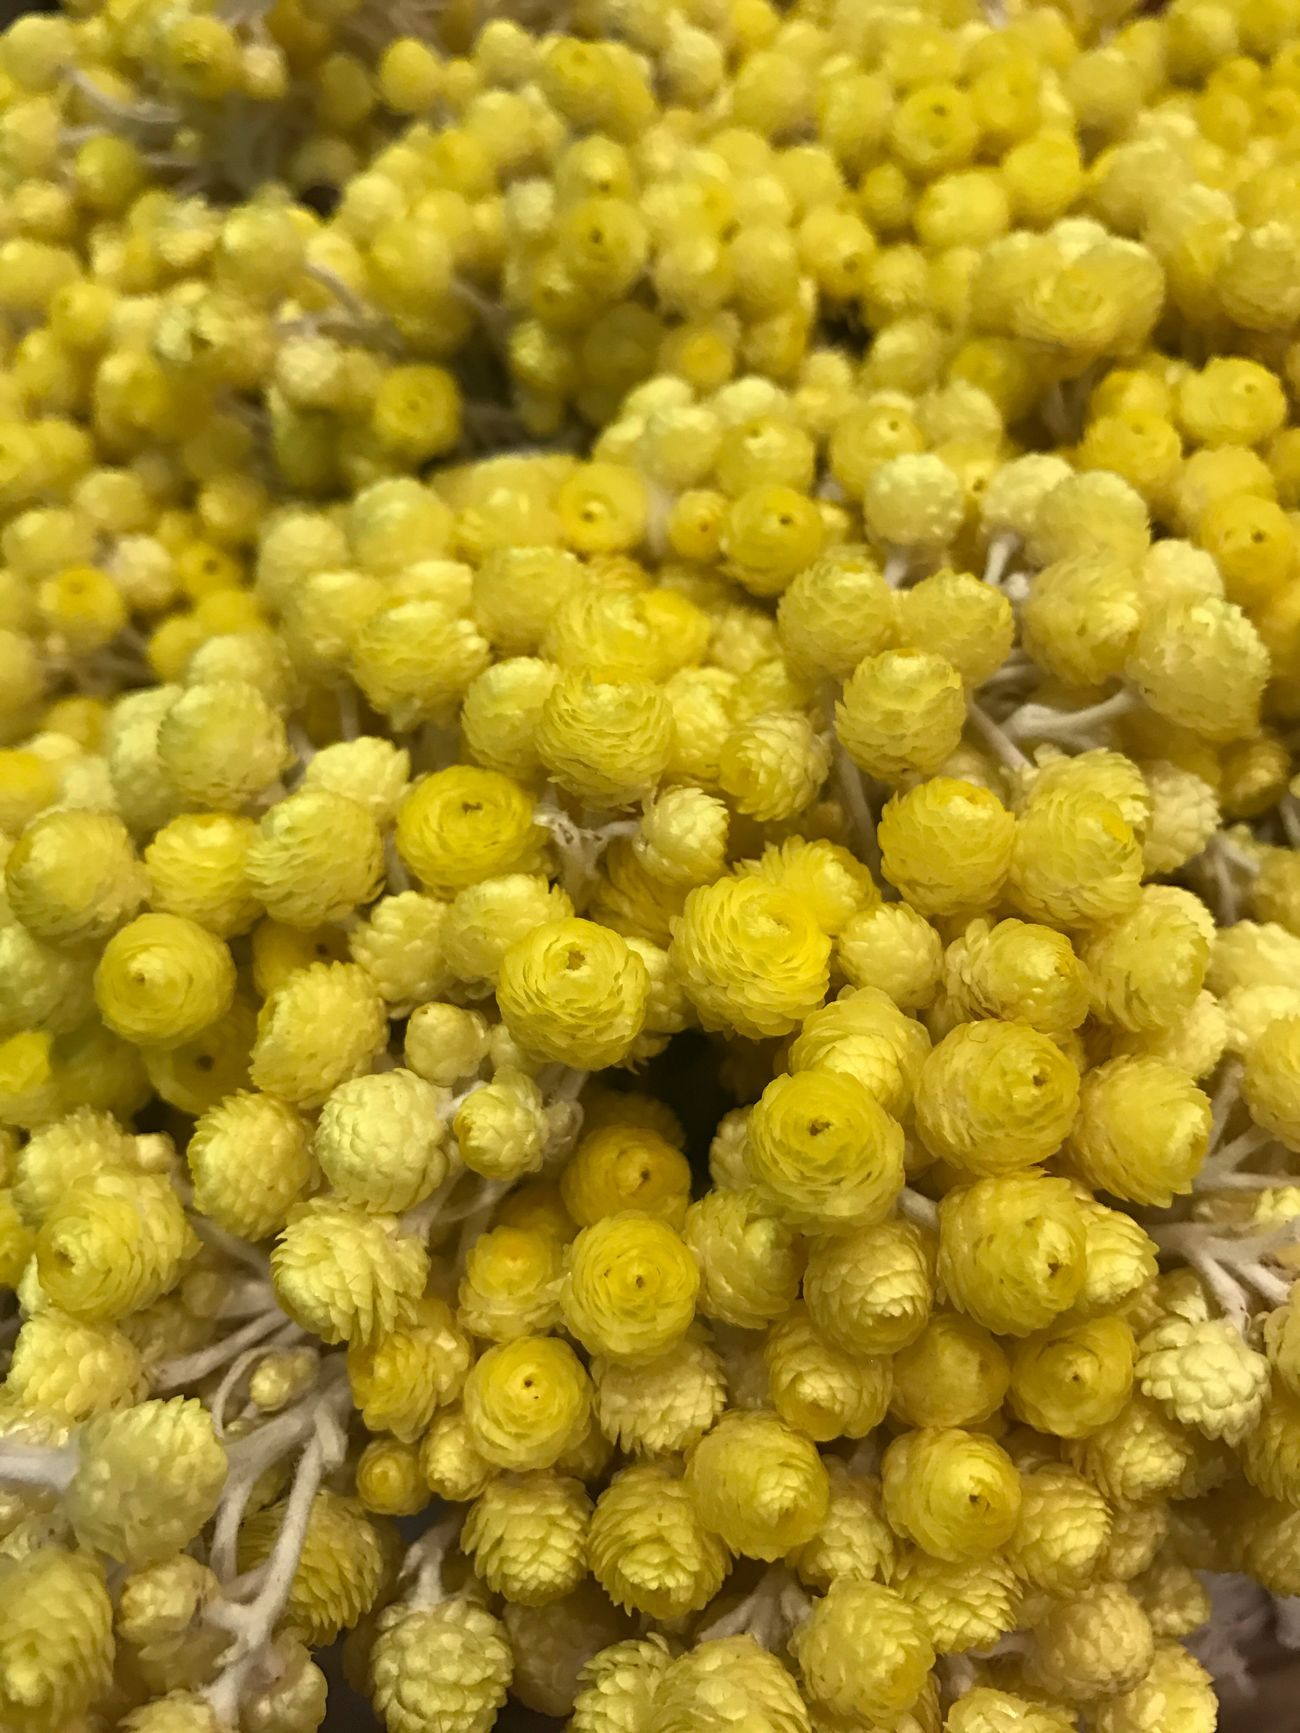 Immortelle Flowers at L'Occitane Yellow Full Frame Food And Drink Backgrounds Close-up No People Healthy Eating Freshness Large Group Of Objects Indoors  Food Nature Seed Chick-pea Day